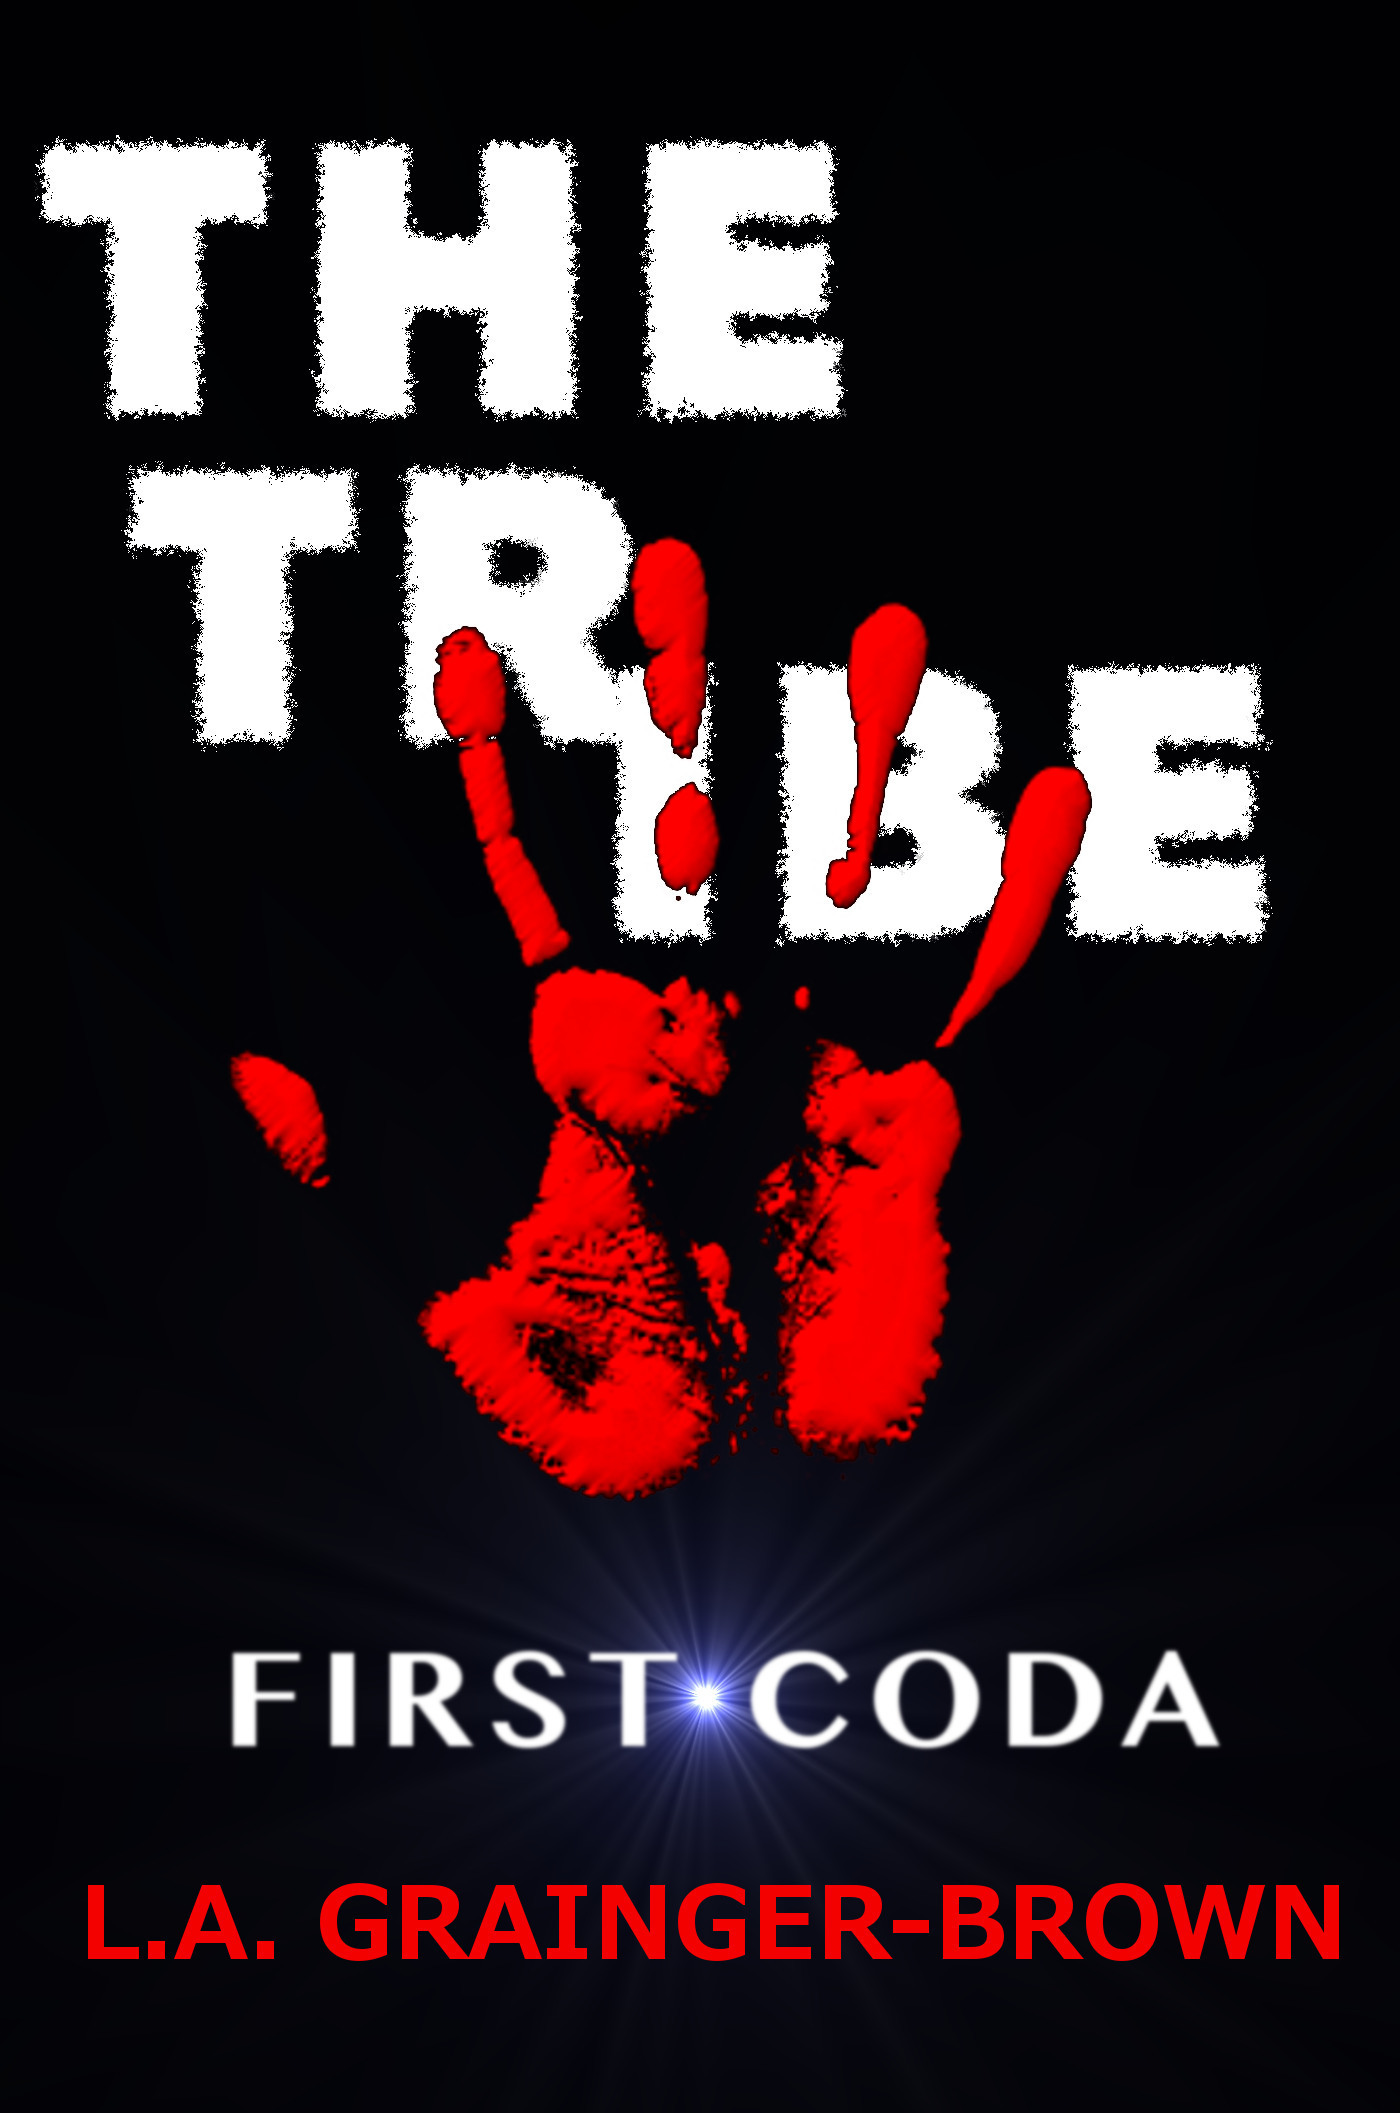 The Tribe: First Coda L.A. Grainger-Brown